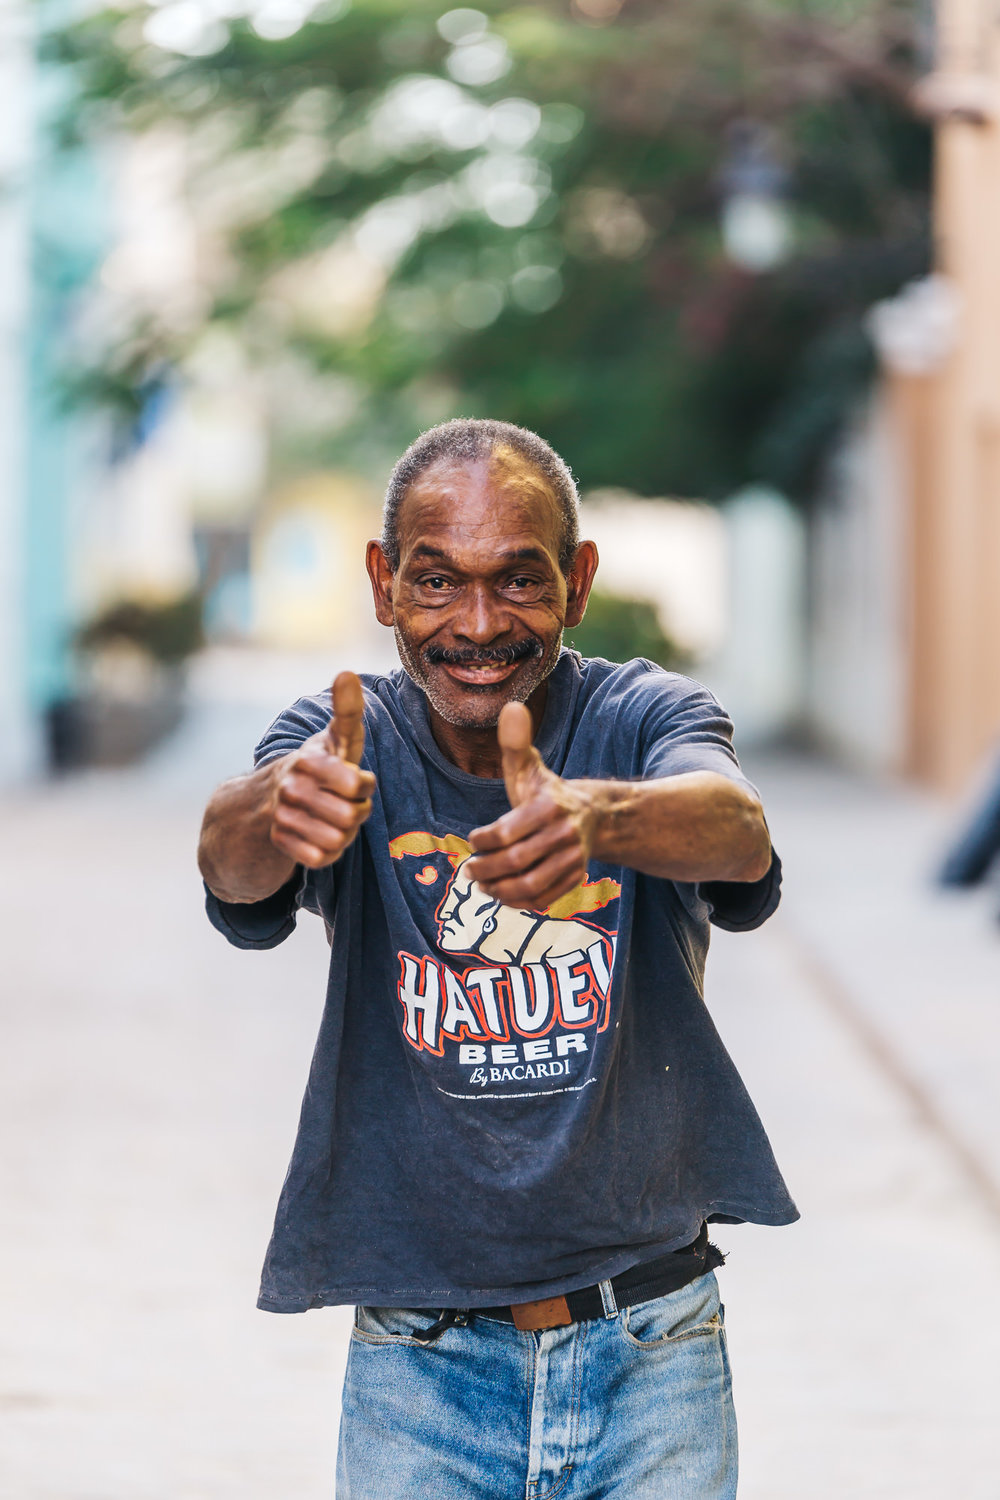 Cubans love to pose for photos - this man just turned 61